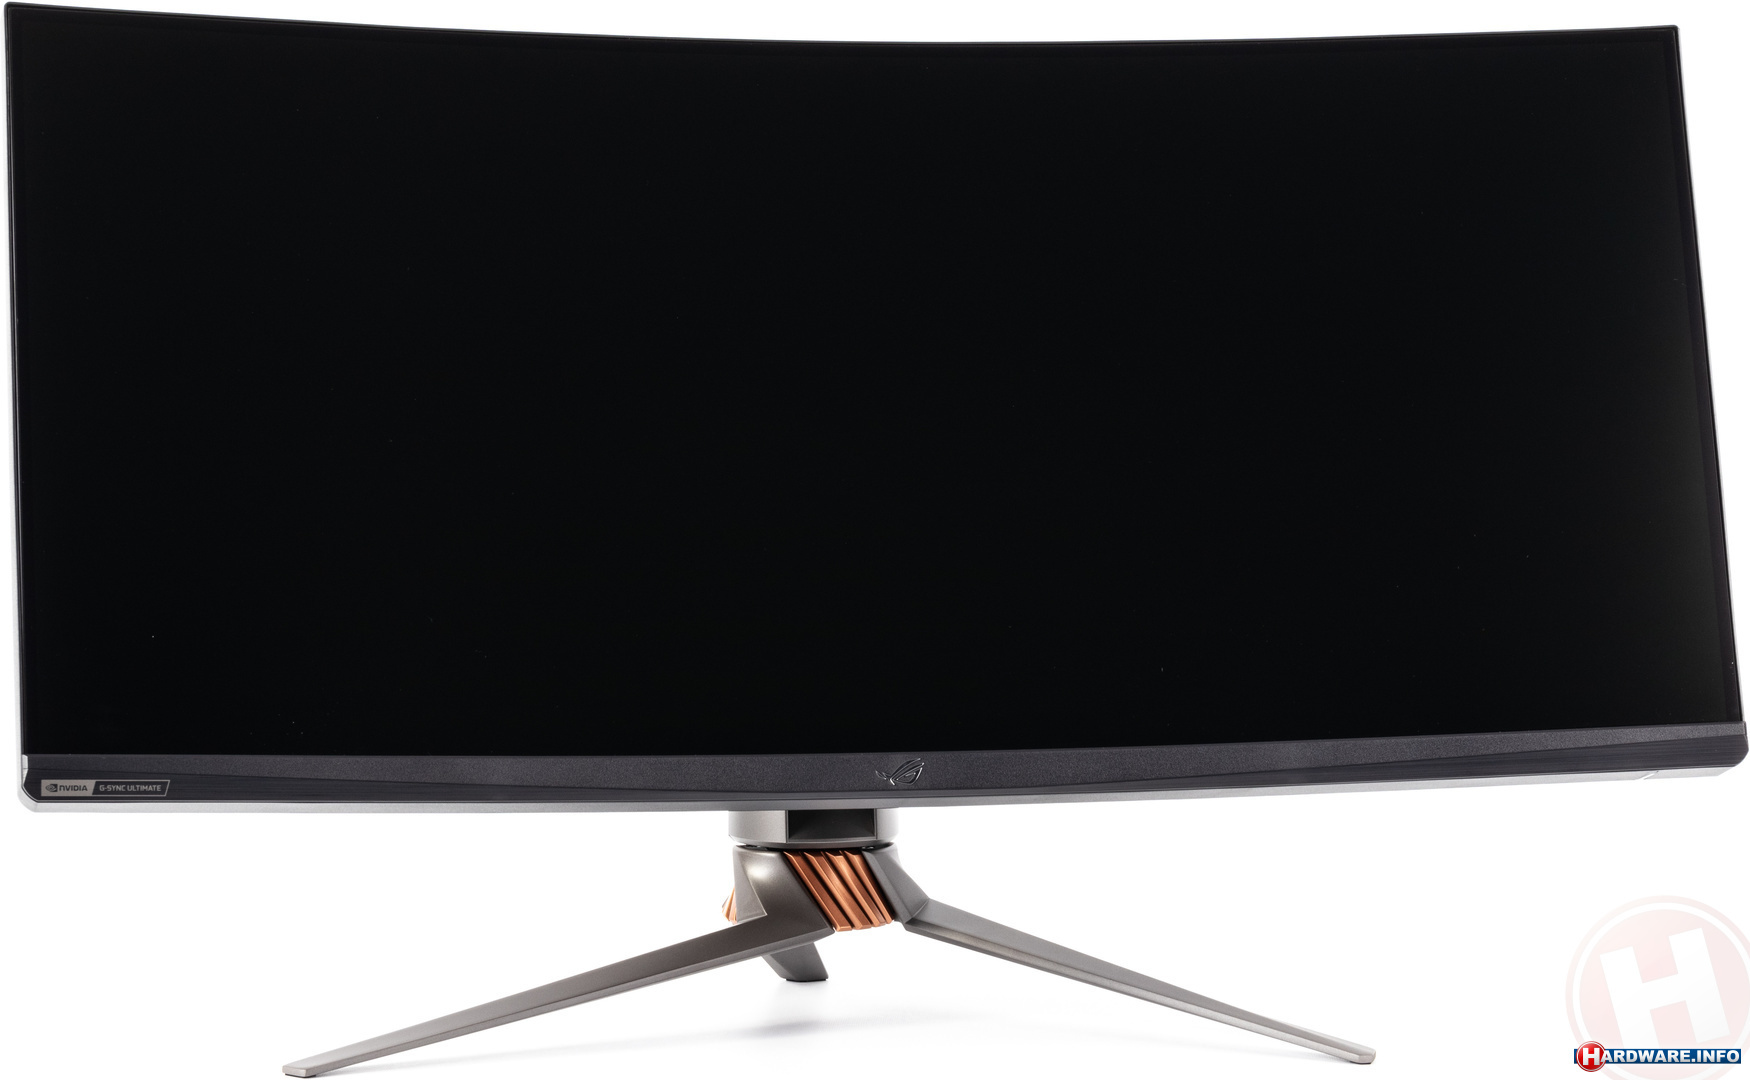 Asus Pg35vq Review